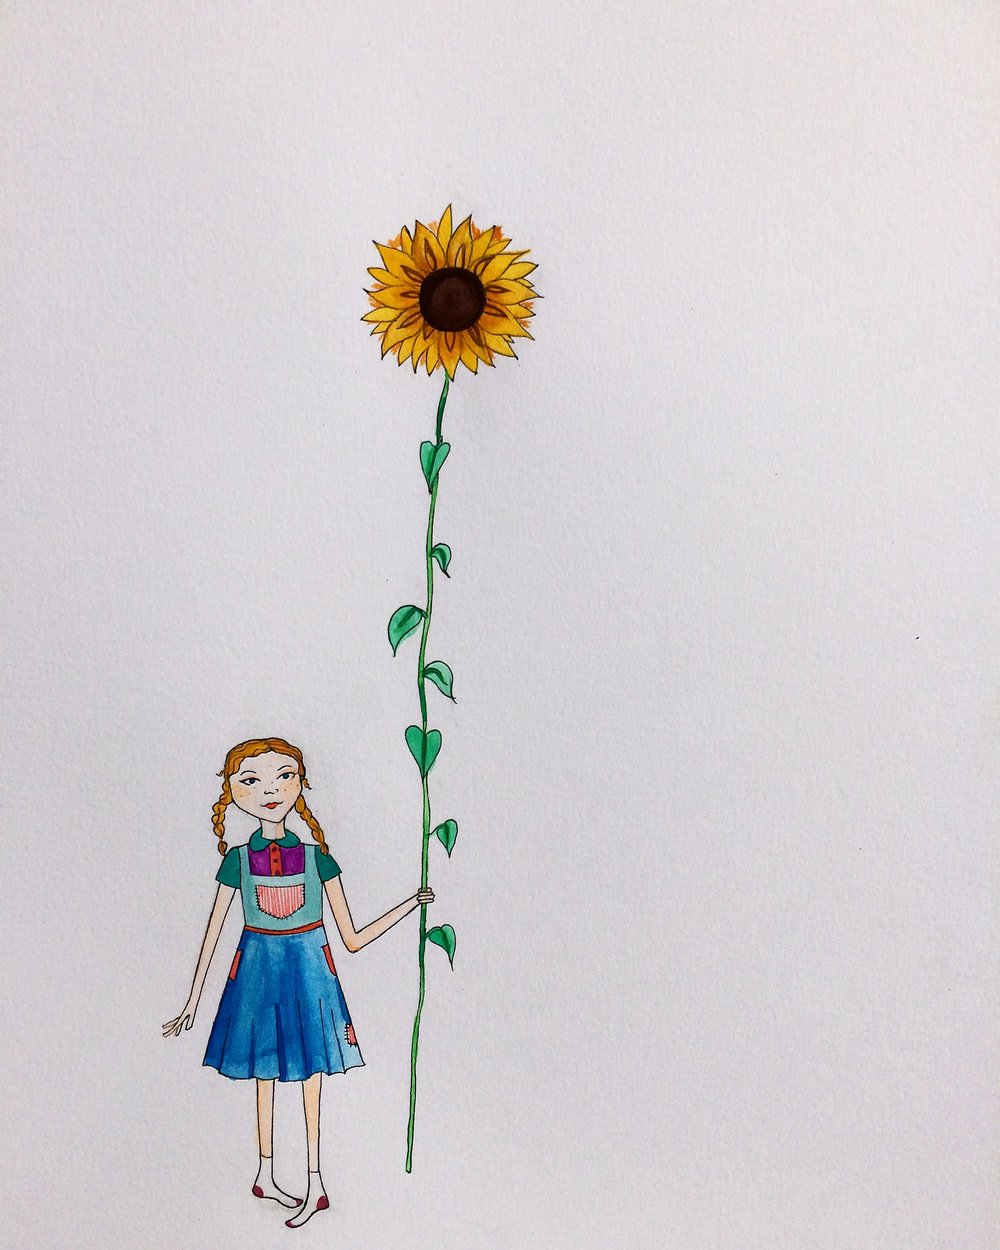 Jill and the Sunflower Stalk